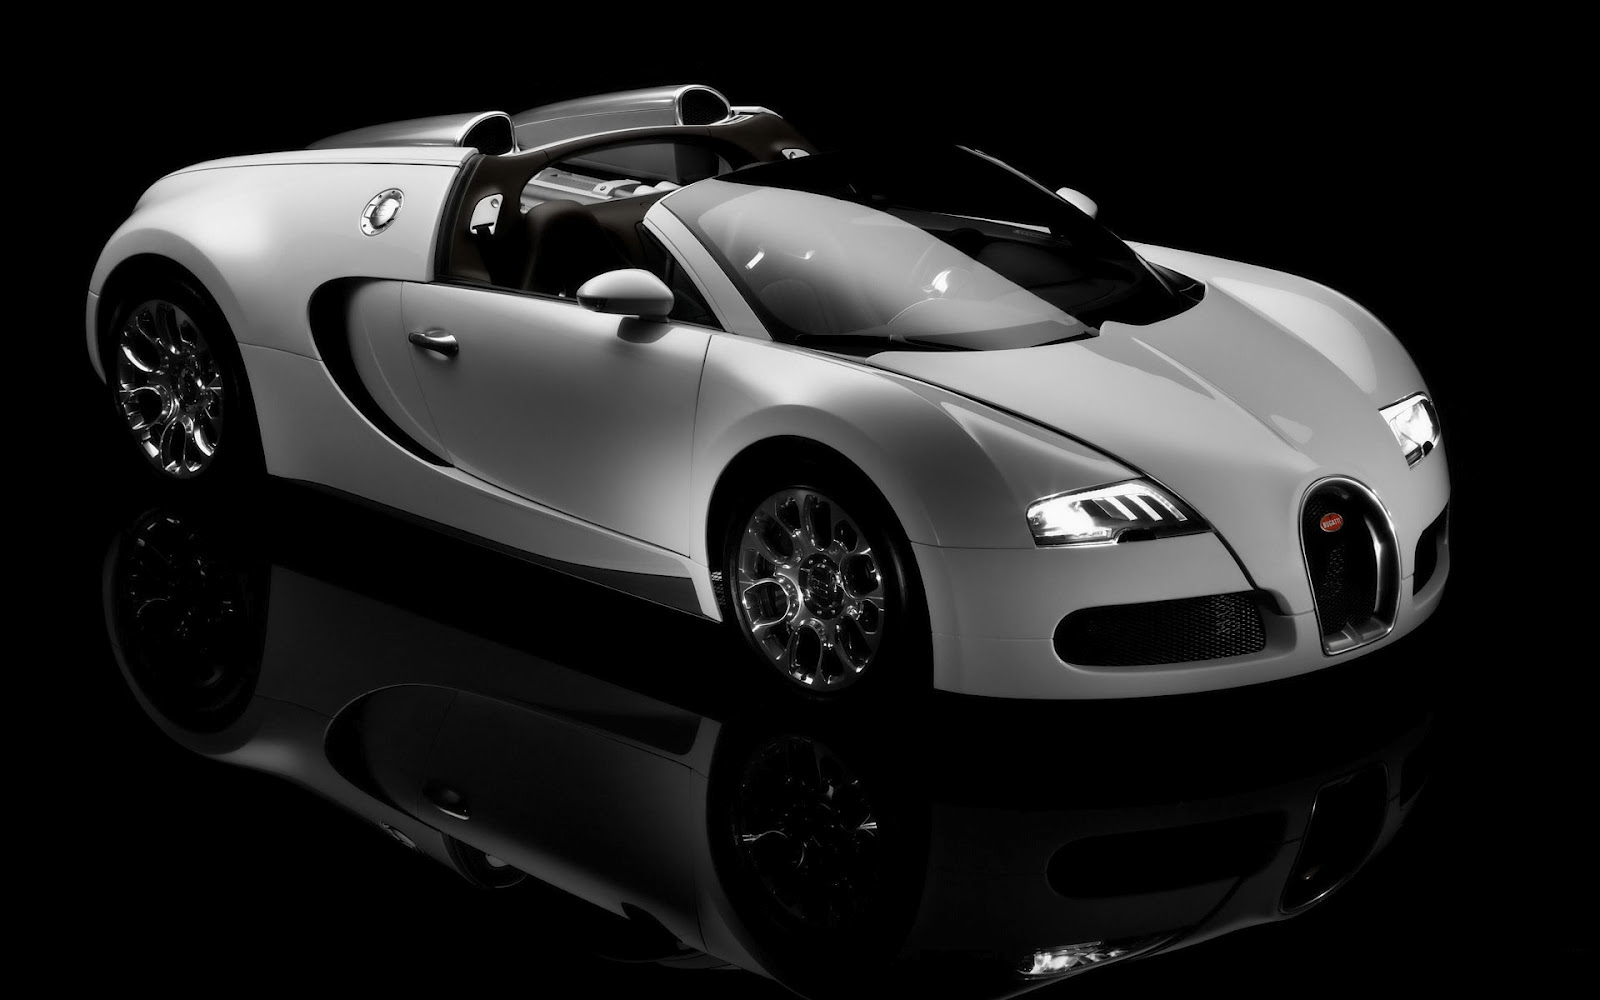 Wallpapers And Pictures Bugatti Veyron Wallpaper 1920 X 1200